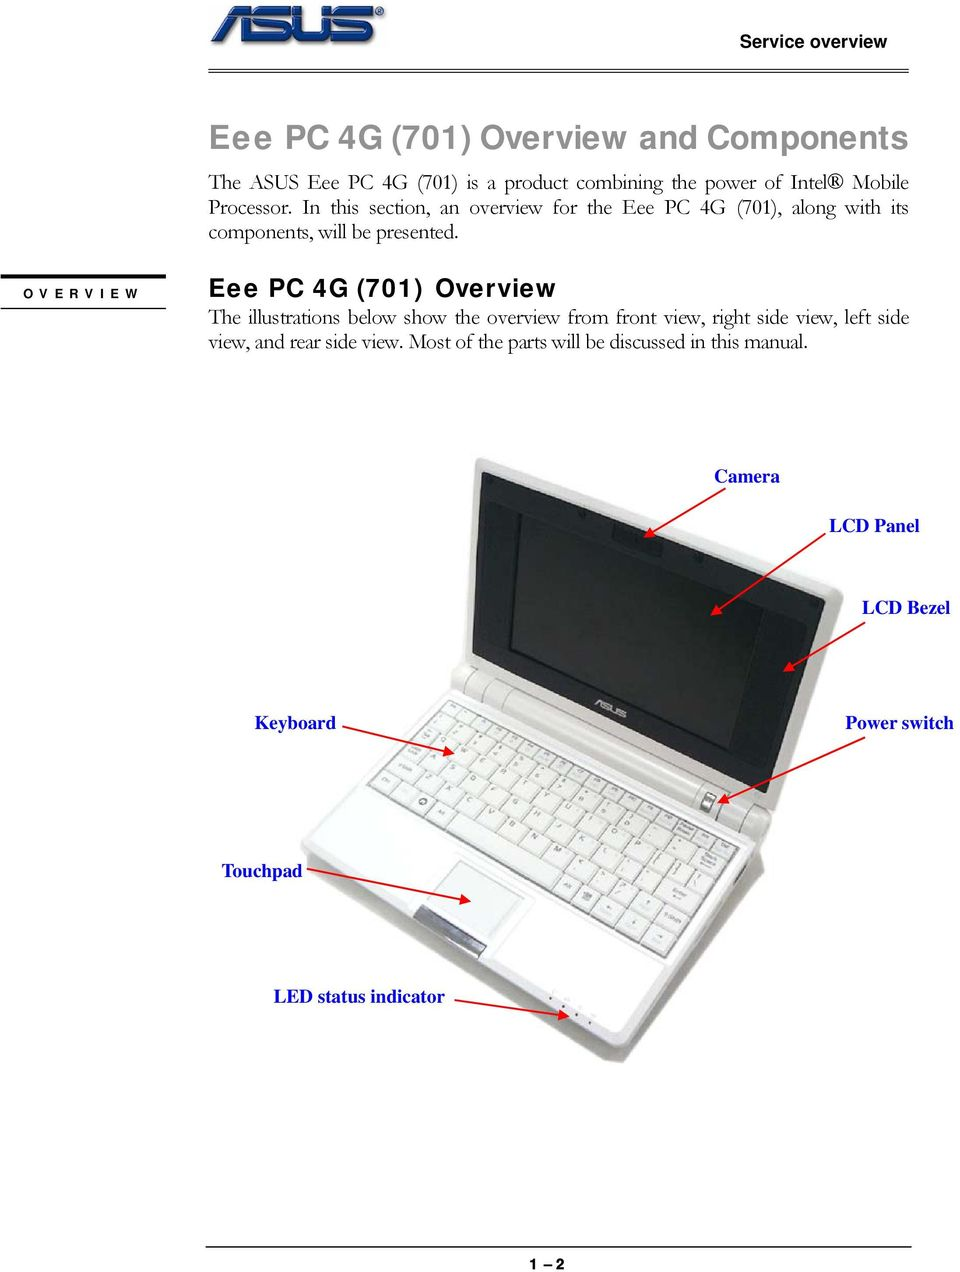 OVERVIEW Eee PC 4G (701) Overview The illustrations below show the overview from front view, right side view, left side view,